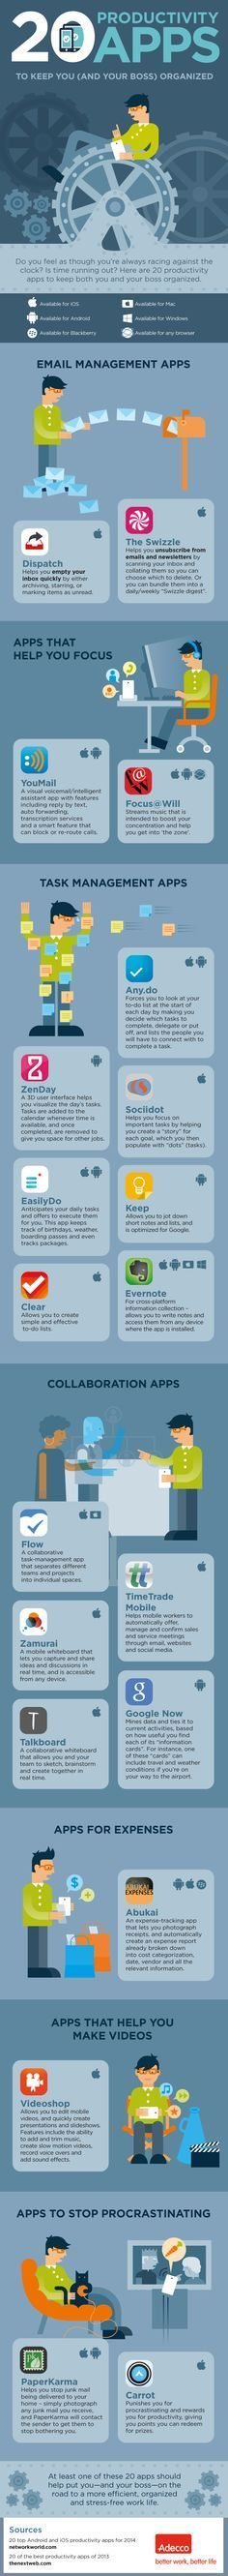 20 iOS and android apps That Turn Your Smartphone Into a Productivity Powerhouse - /explore/Infographic